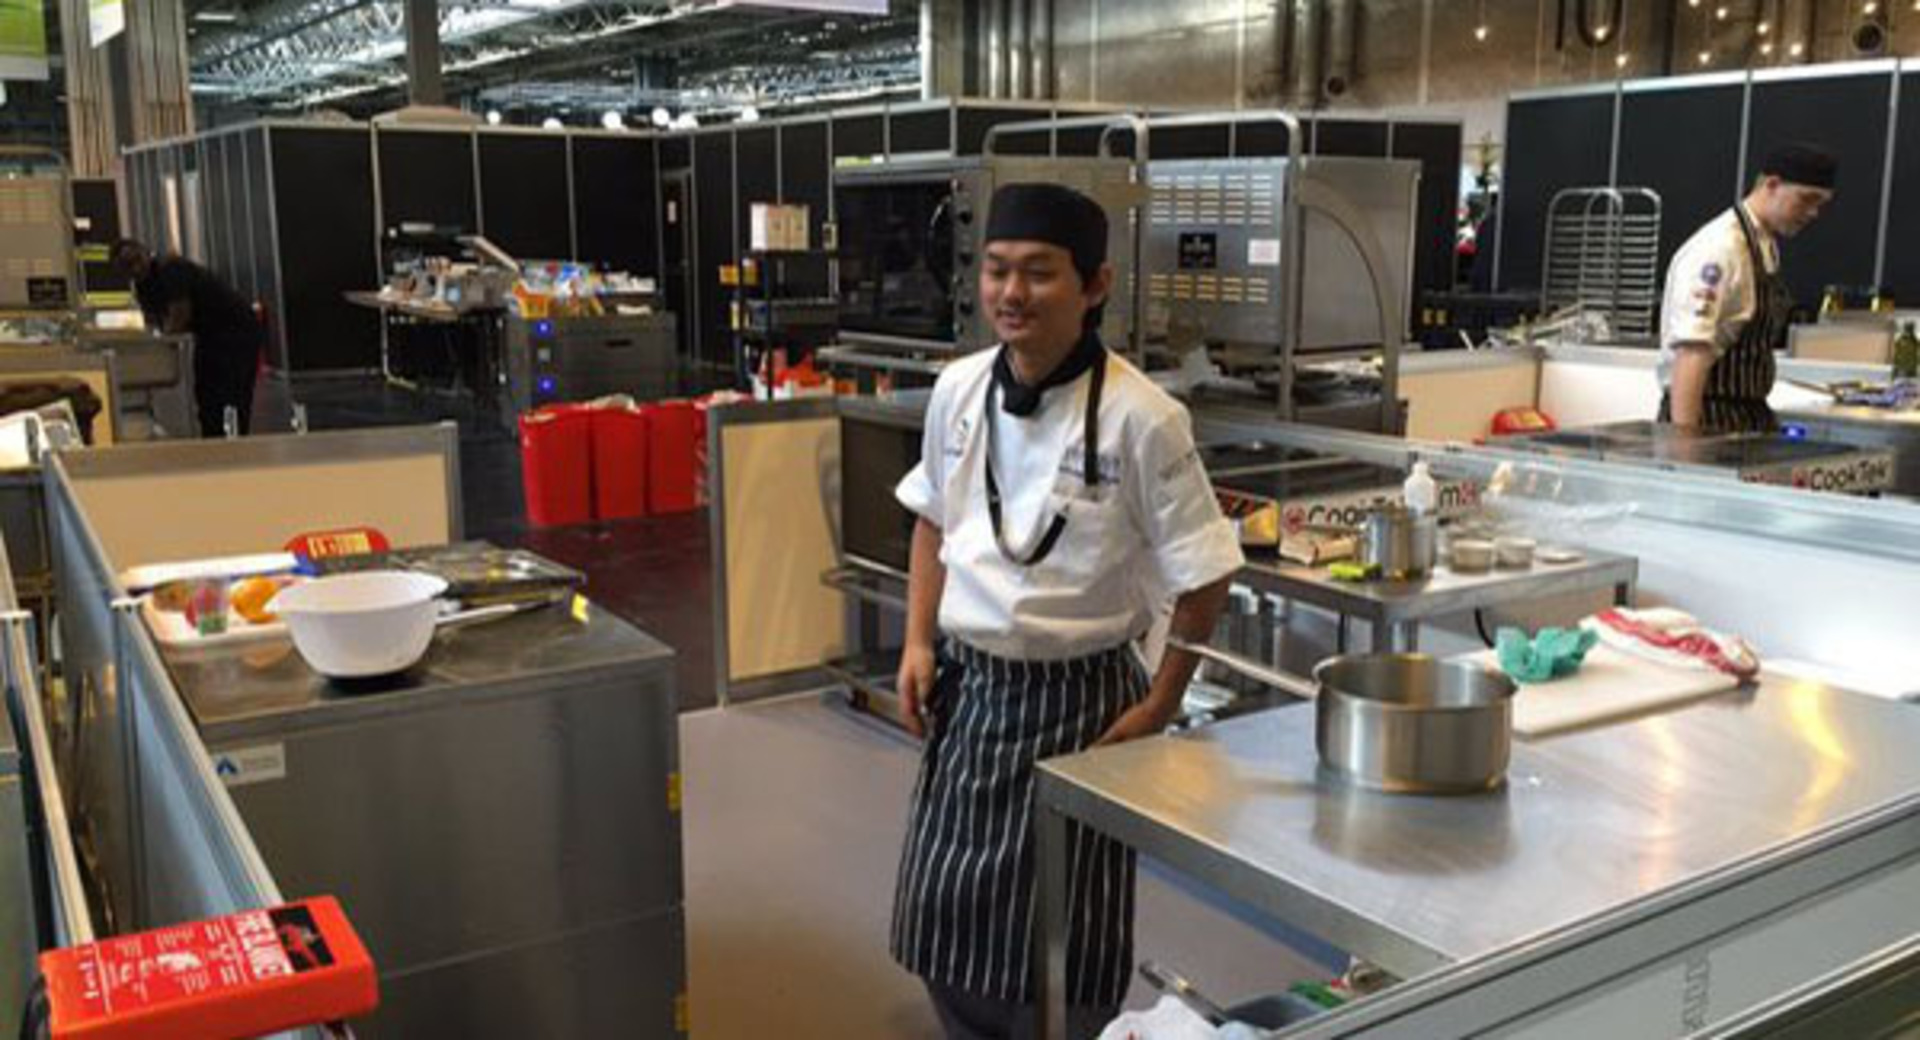 WorldSkills success for Catering student Ashesh